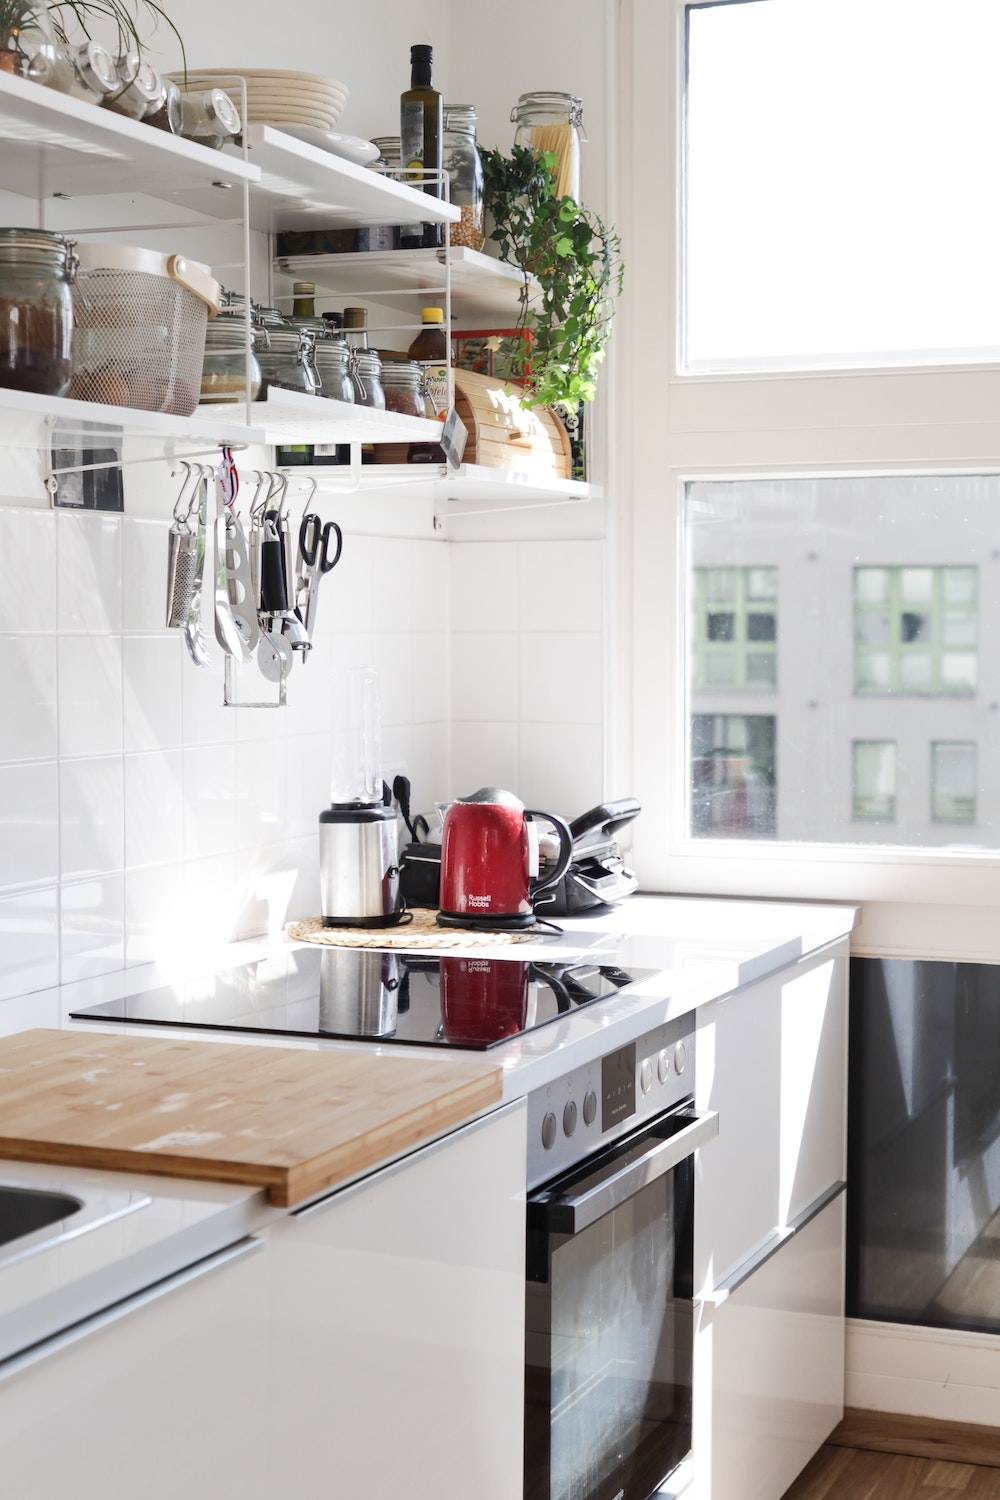 Rent bright kitchen as a photo studio and film location in Berlin, Germany with Beazy